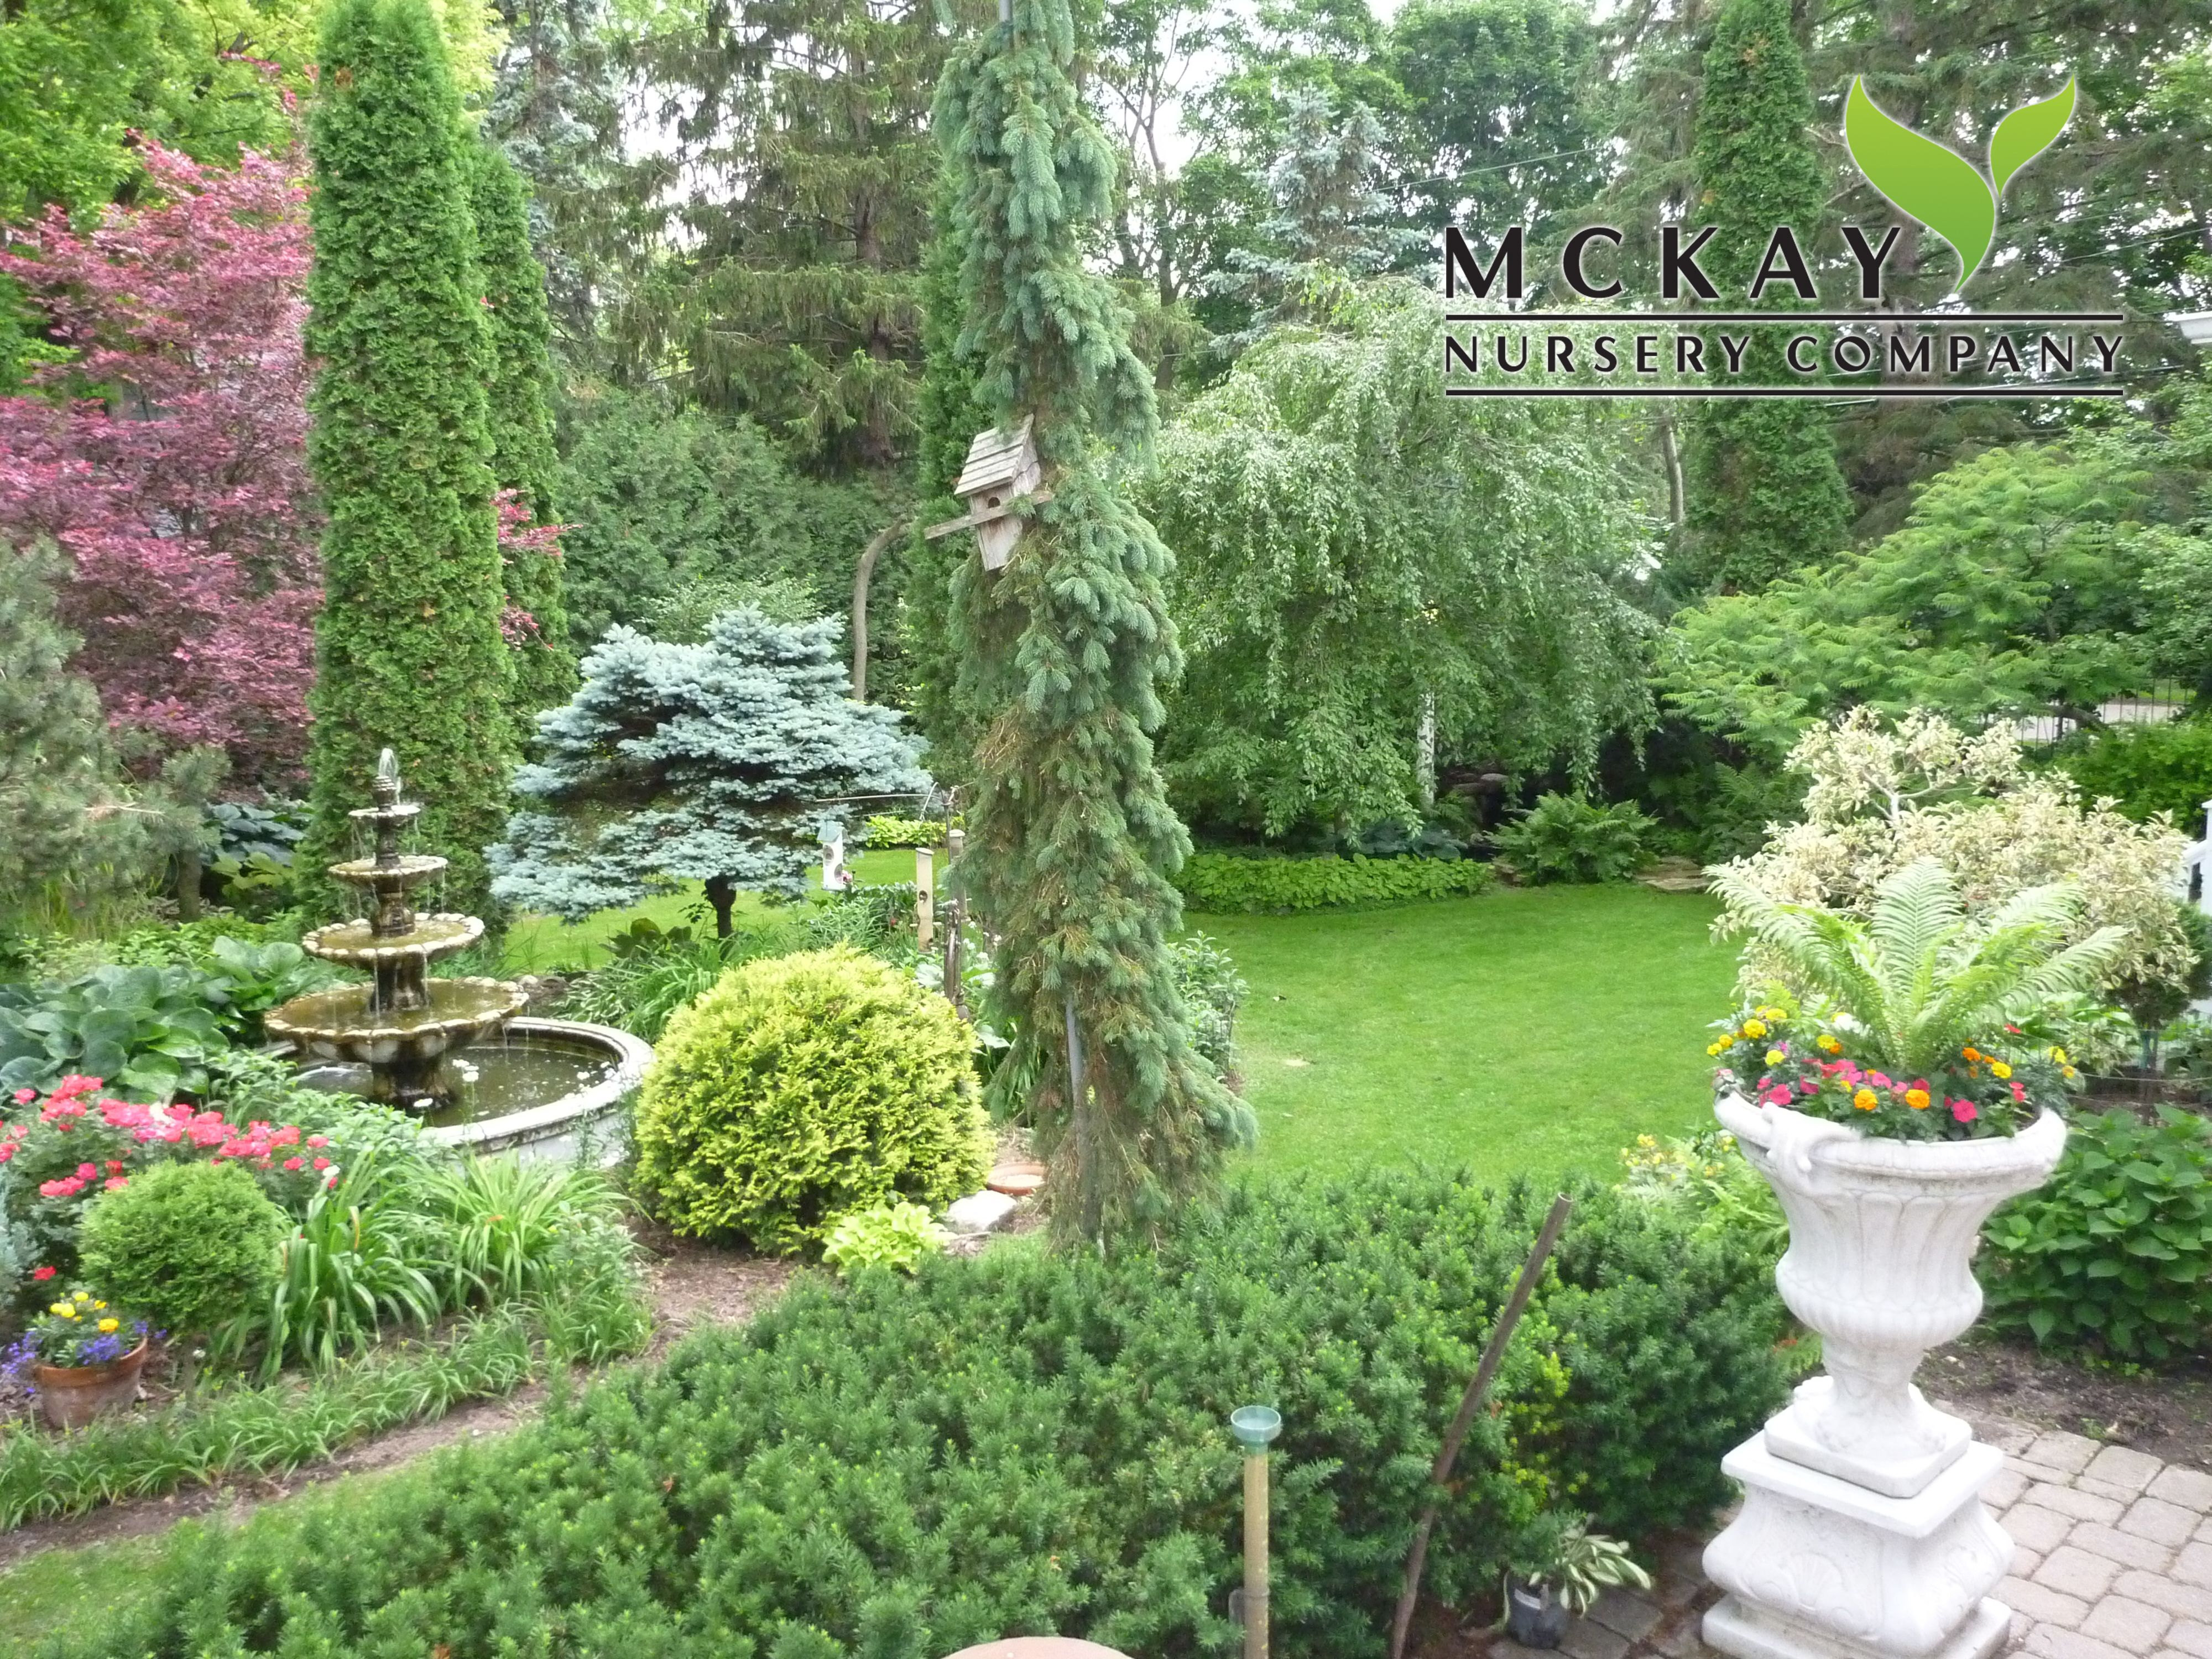 lush landscaping ideas. Love The Mixture Of Greens And Textures McKay Nursery Company - Lush Landscaping Ideas. Http Ideas E